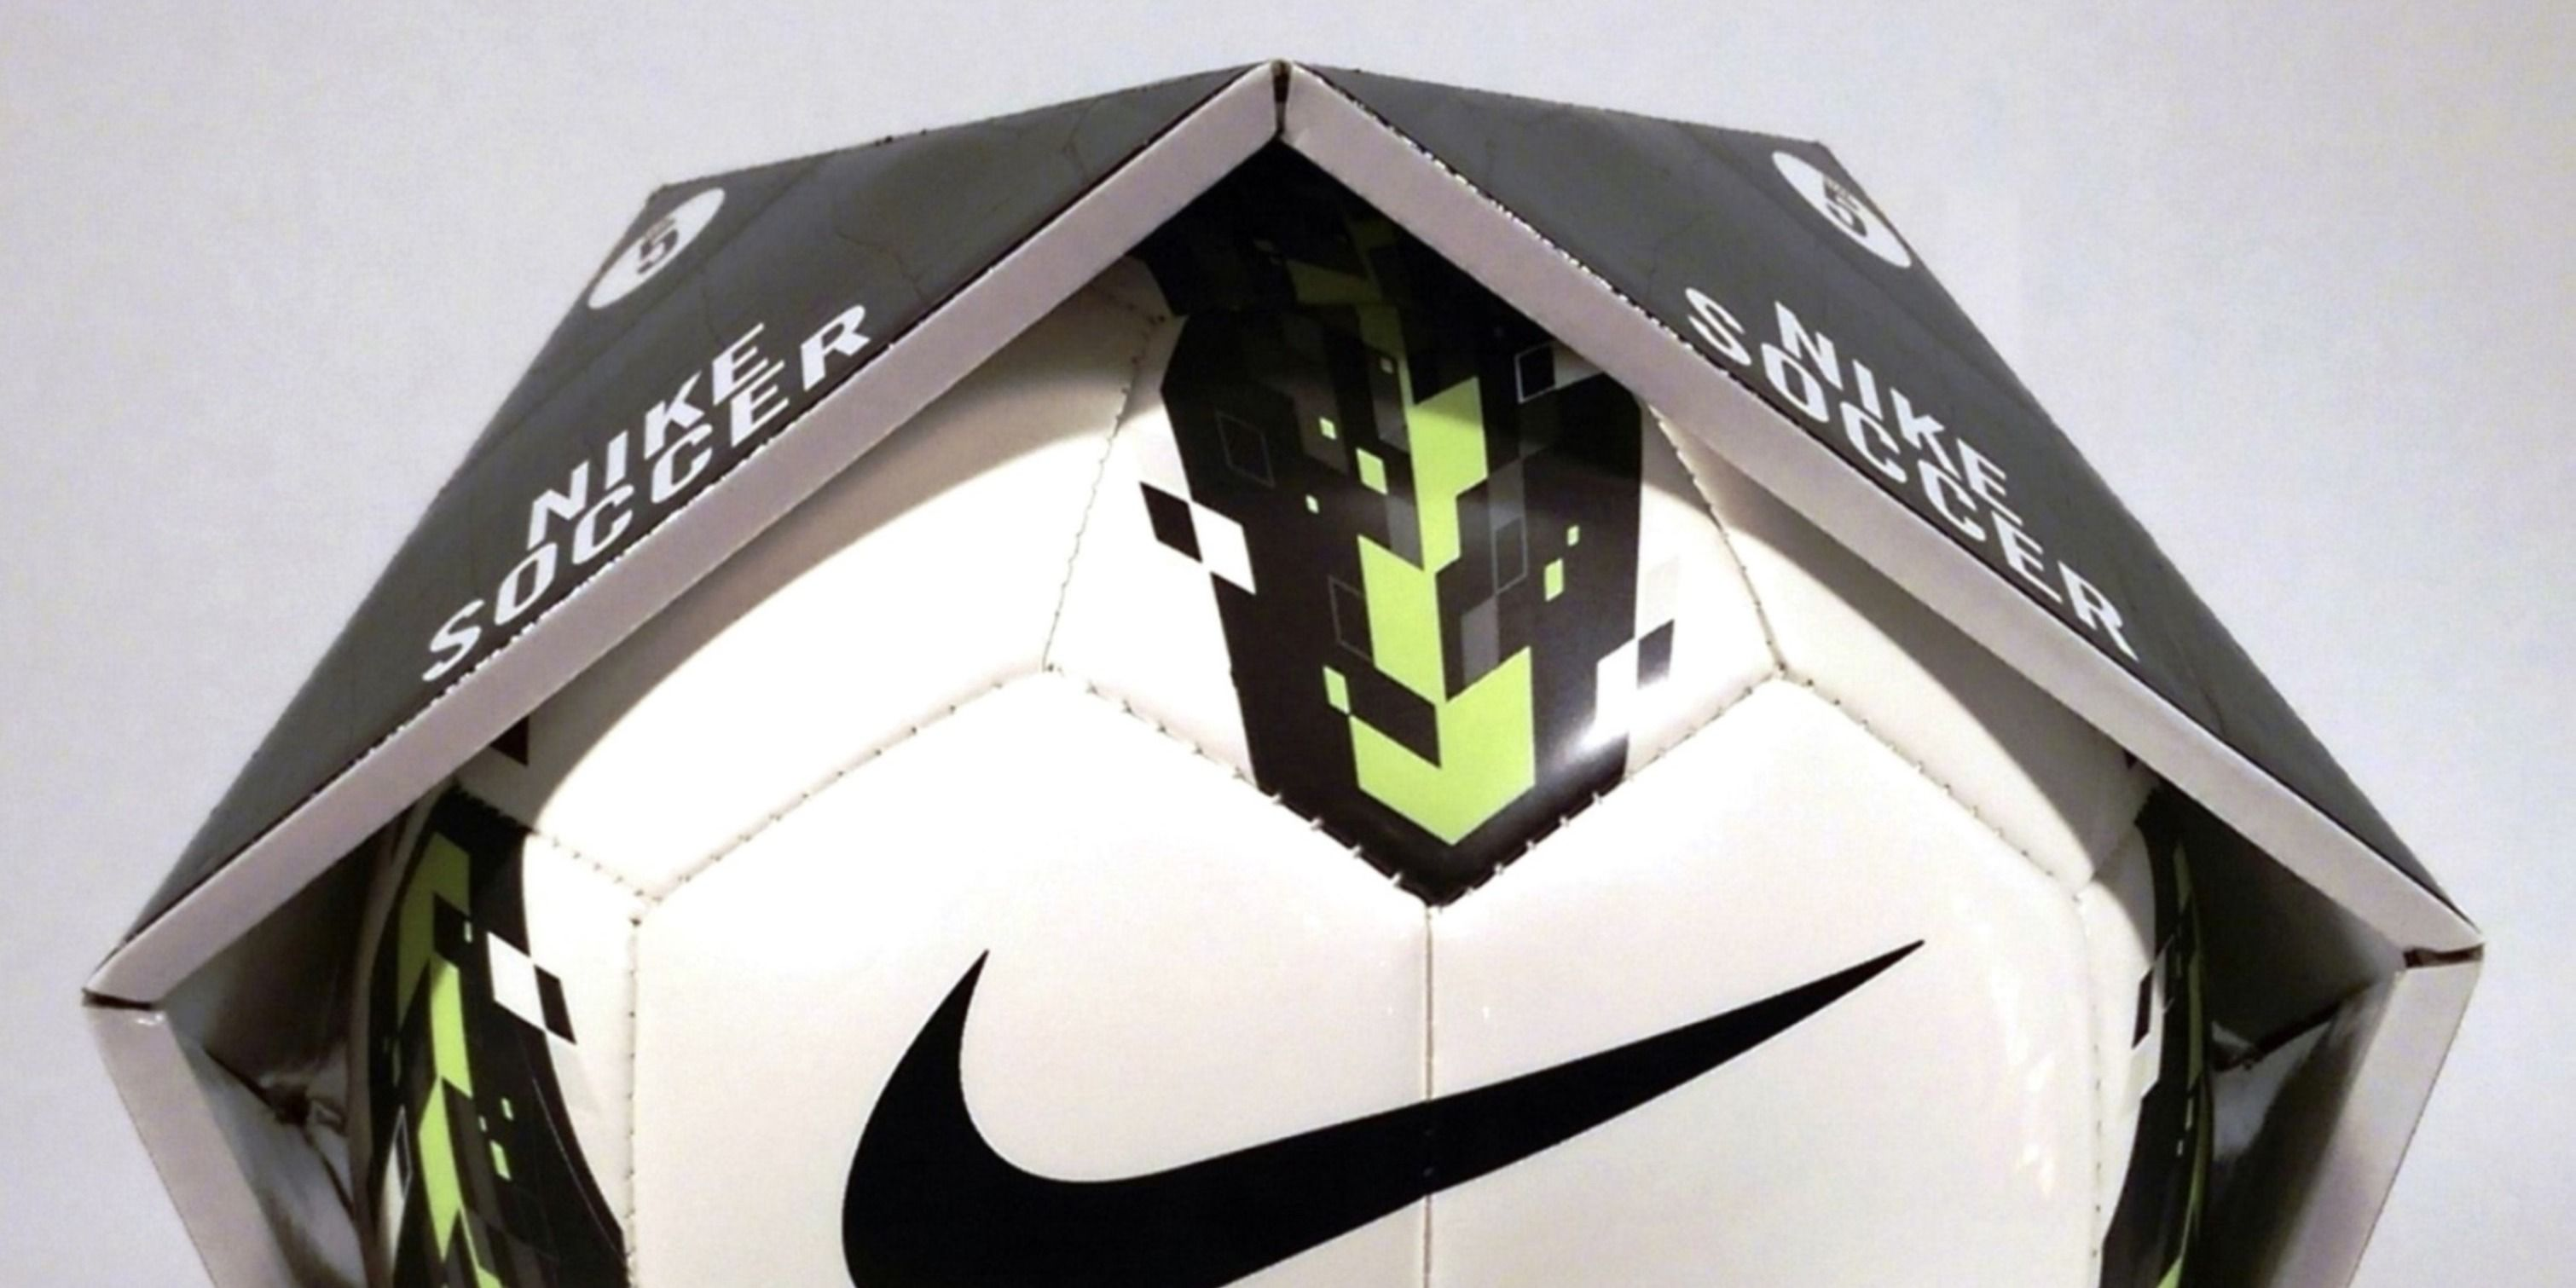 NIKE Inflatables 2015/2016 Packaging Redesign - 2016 Diamond Finalist Award - DuPont Awards for Packaging Innovation